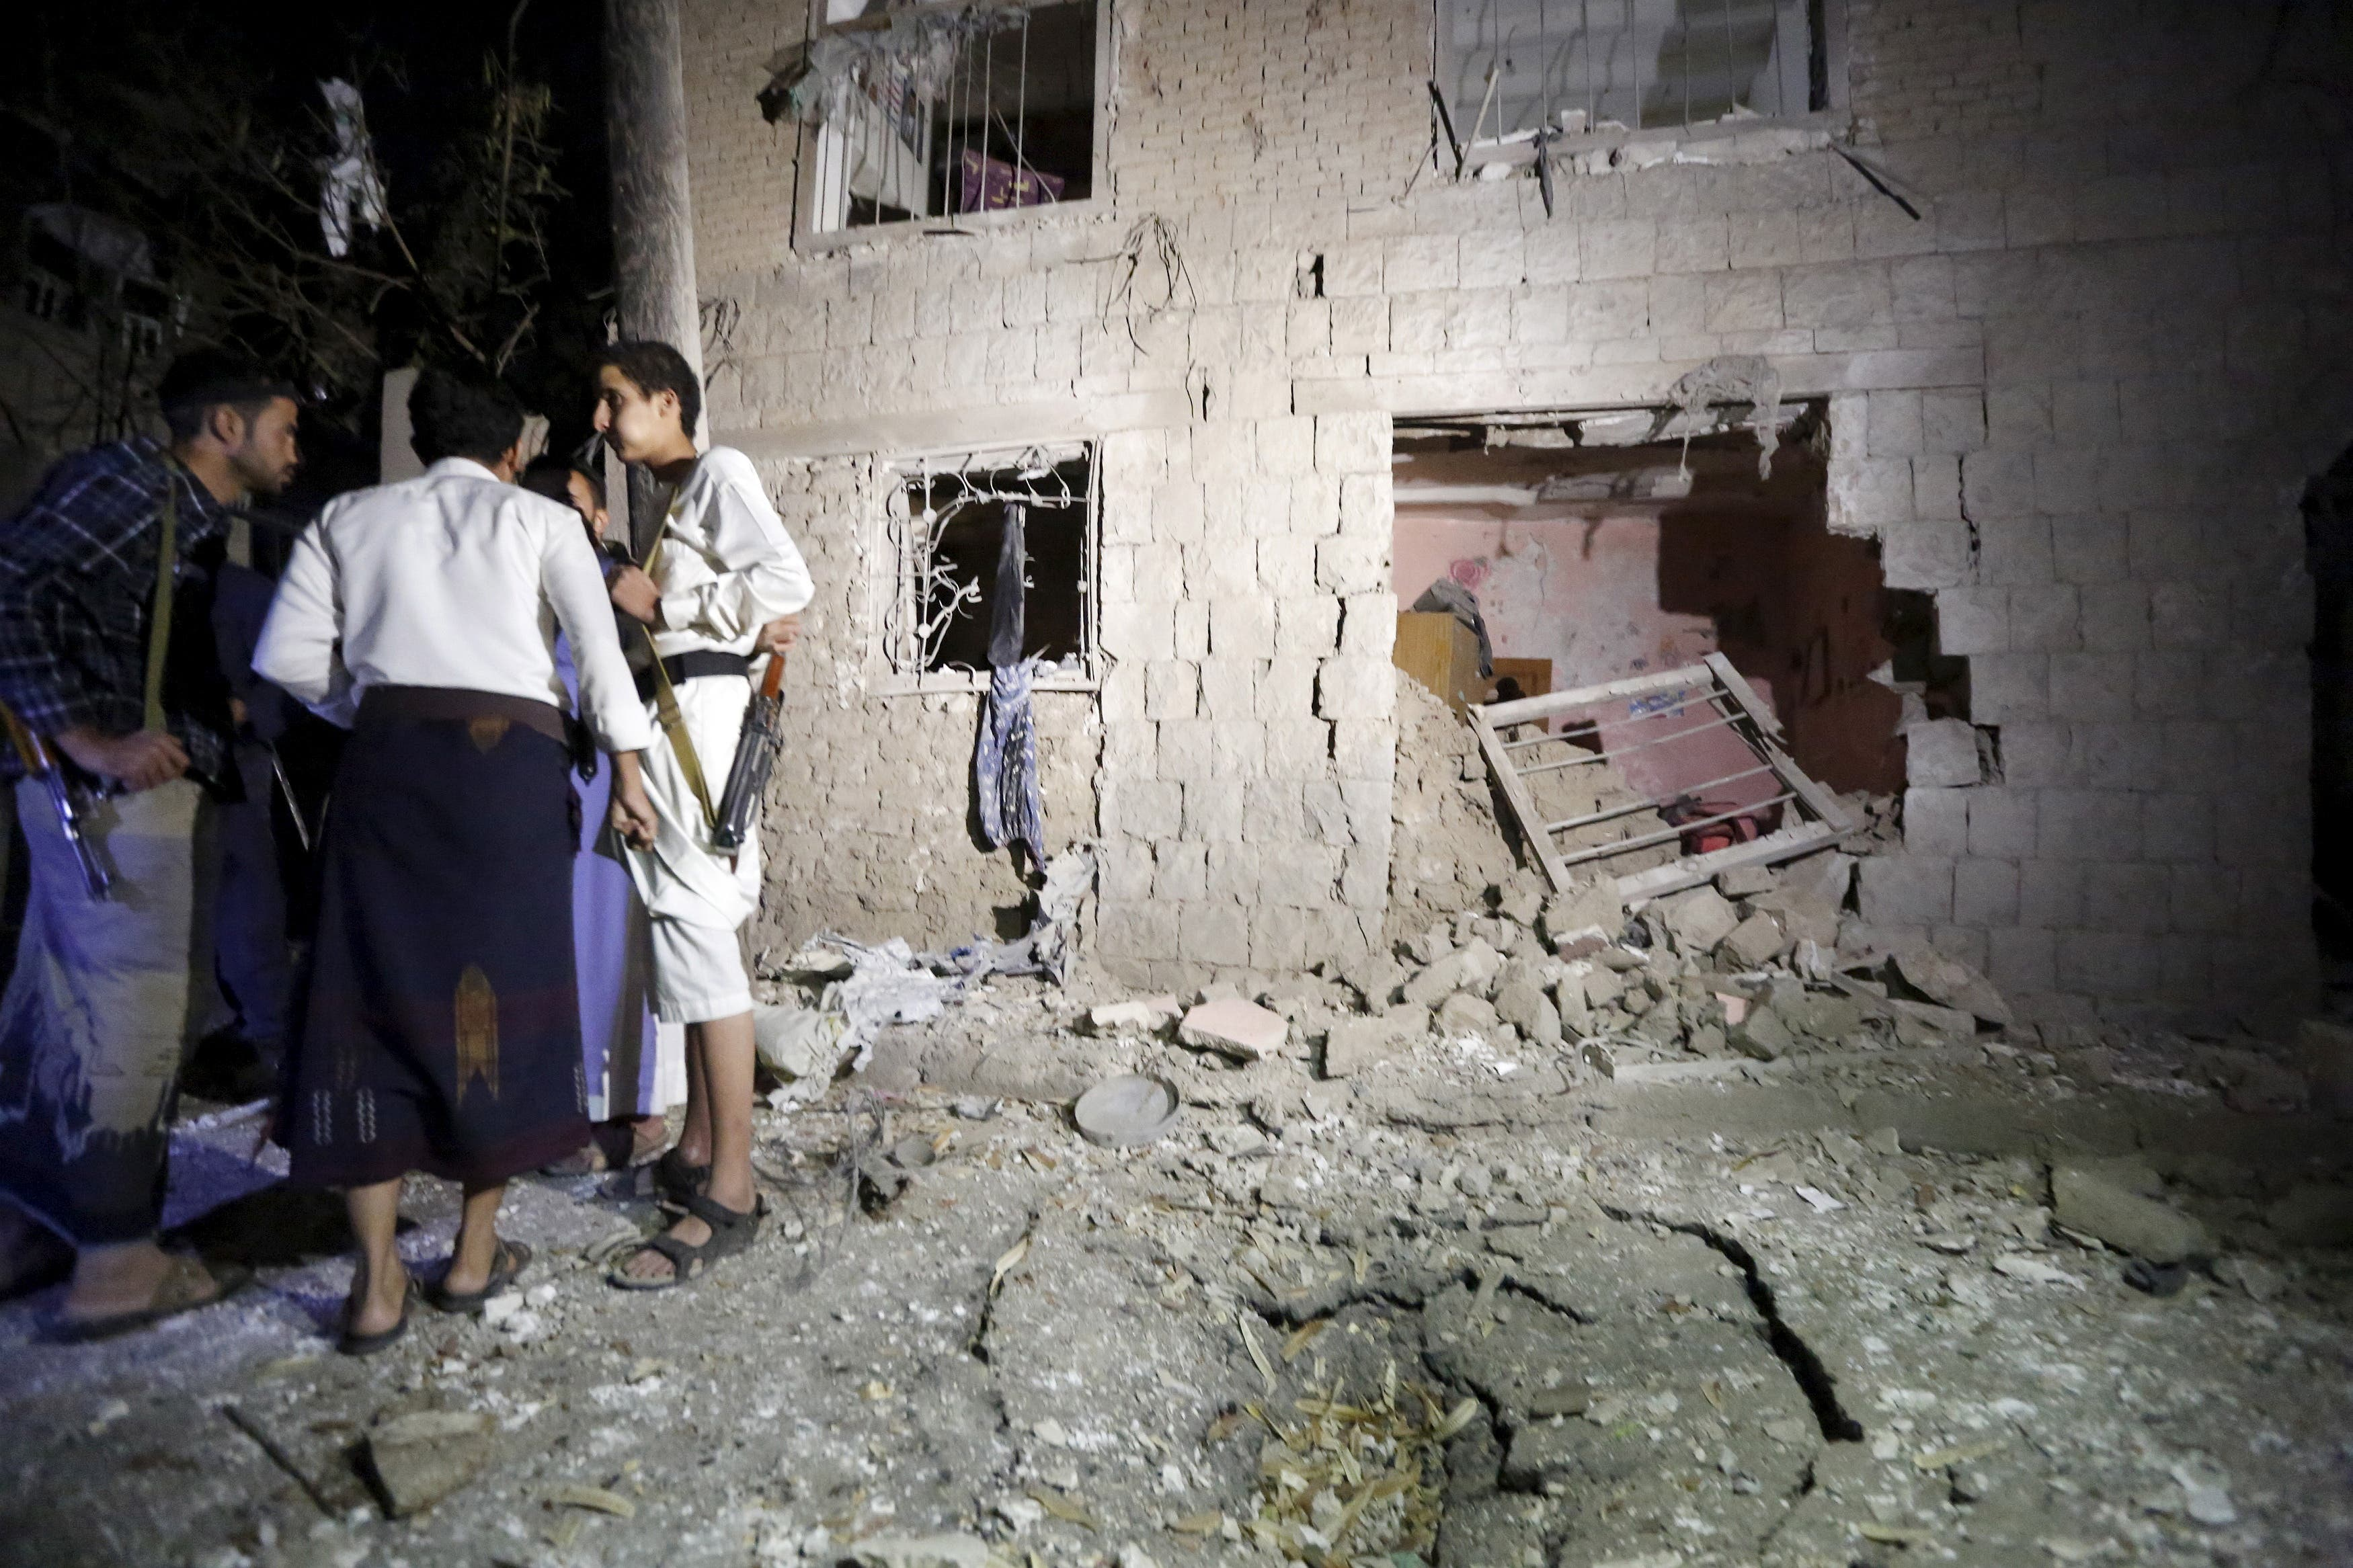 People stand next to a damaged house at the site of a car bomb attack in Yemen's capital Sanaa June 29, 2015.